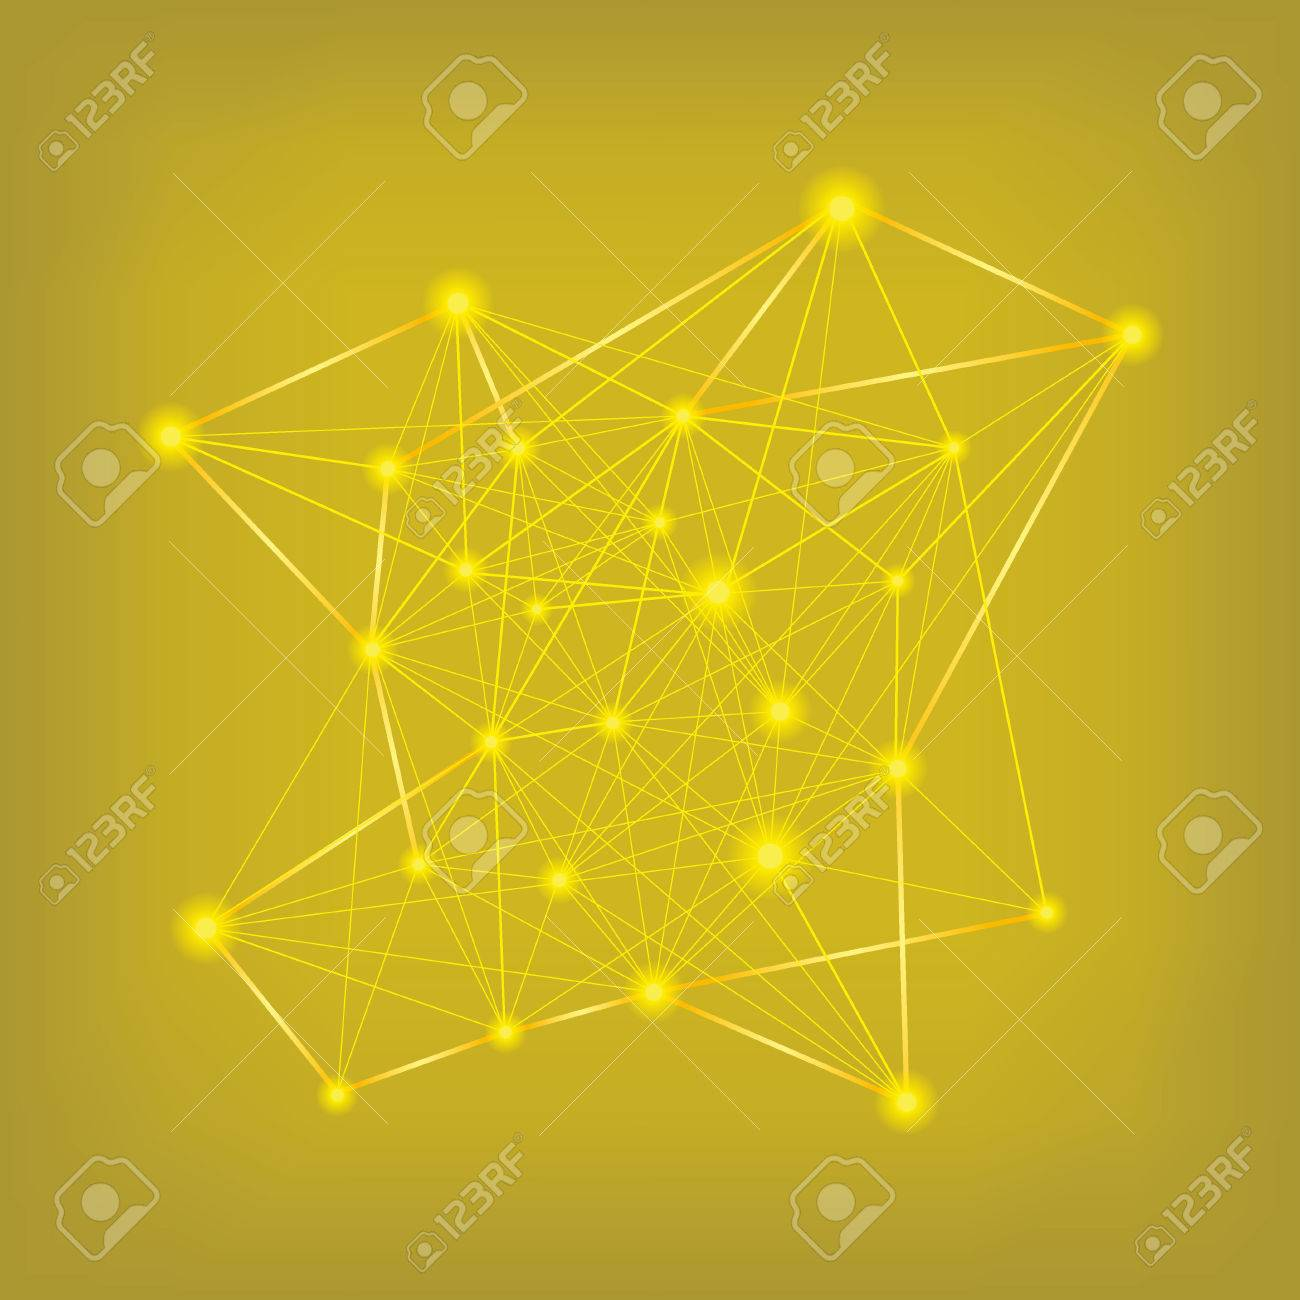 Abstract yellow data connections - 39809753